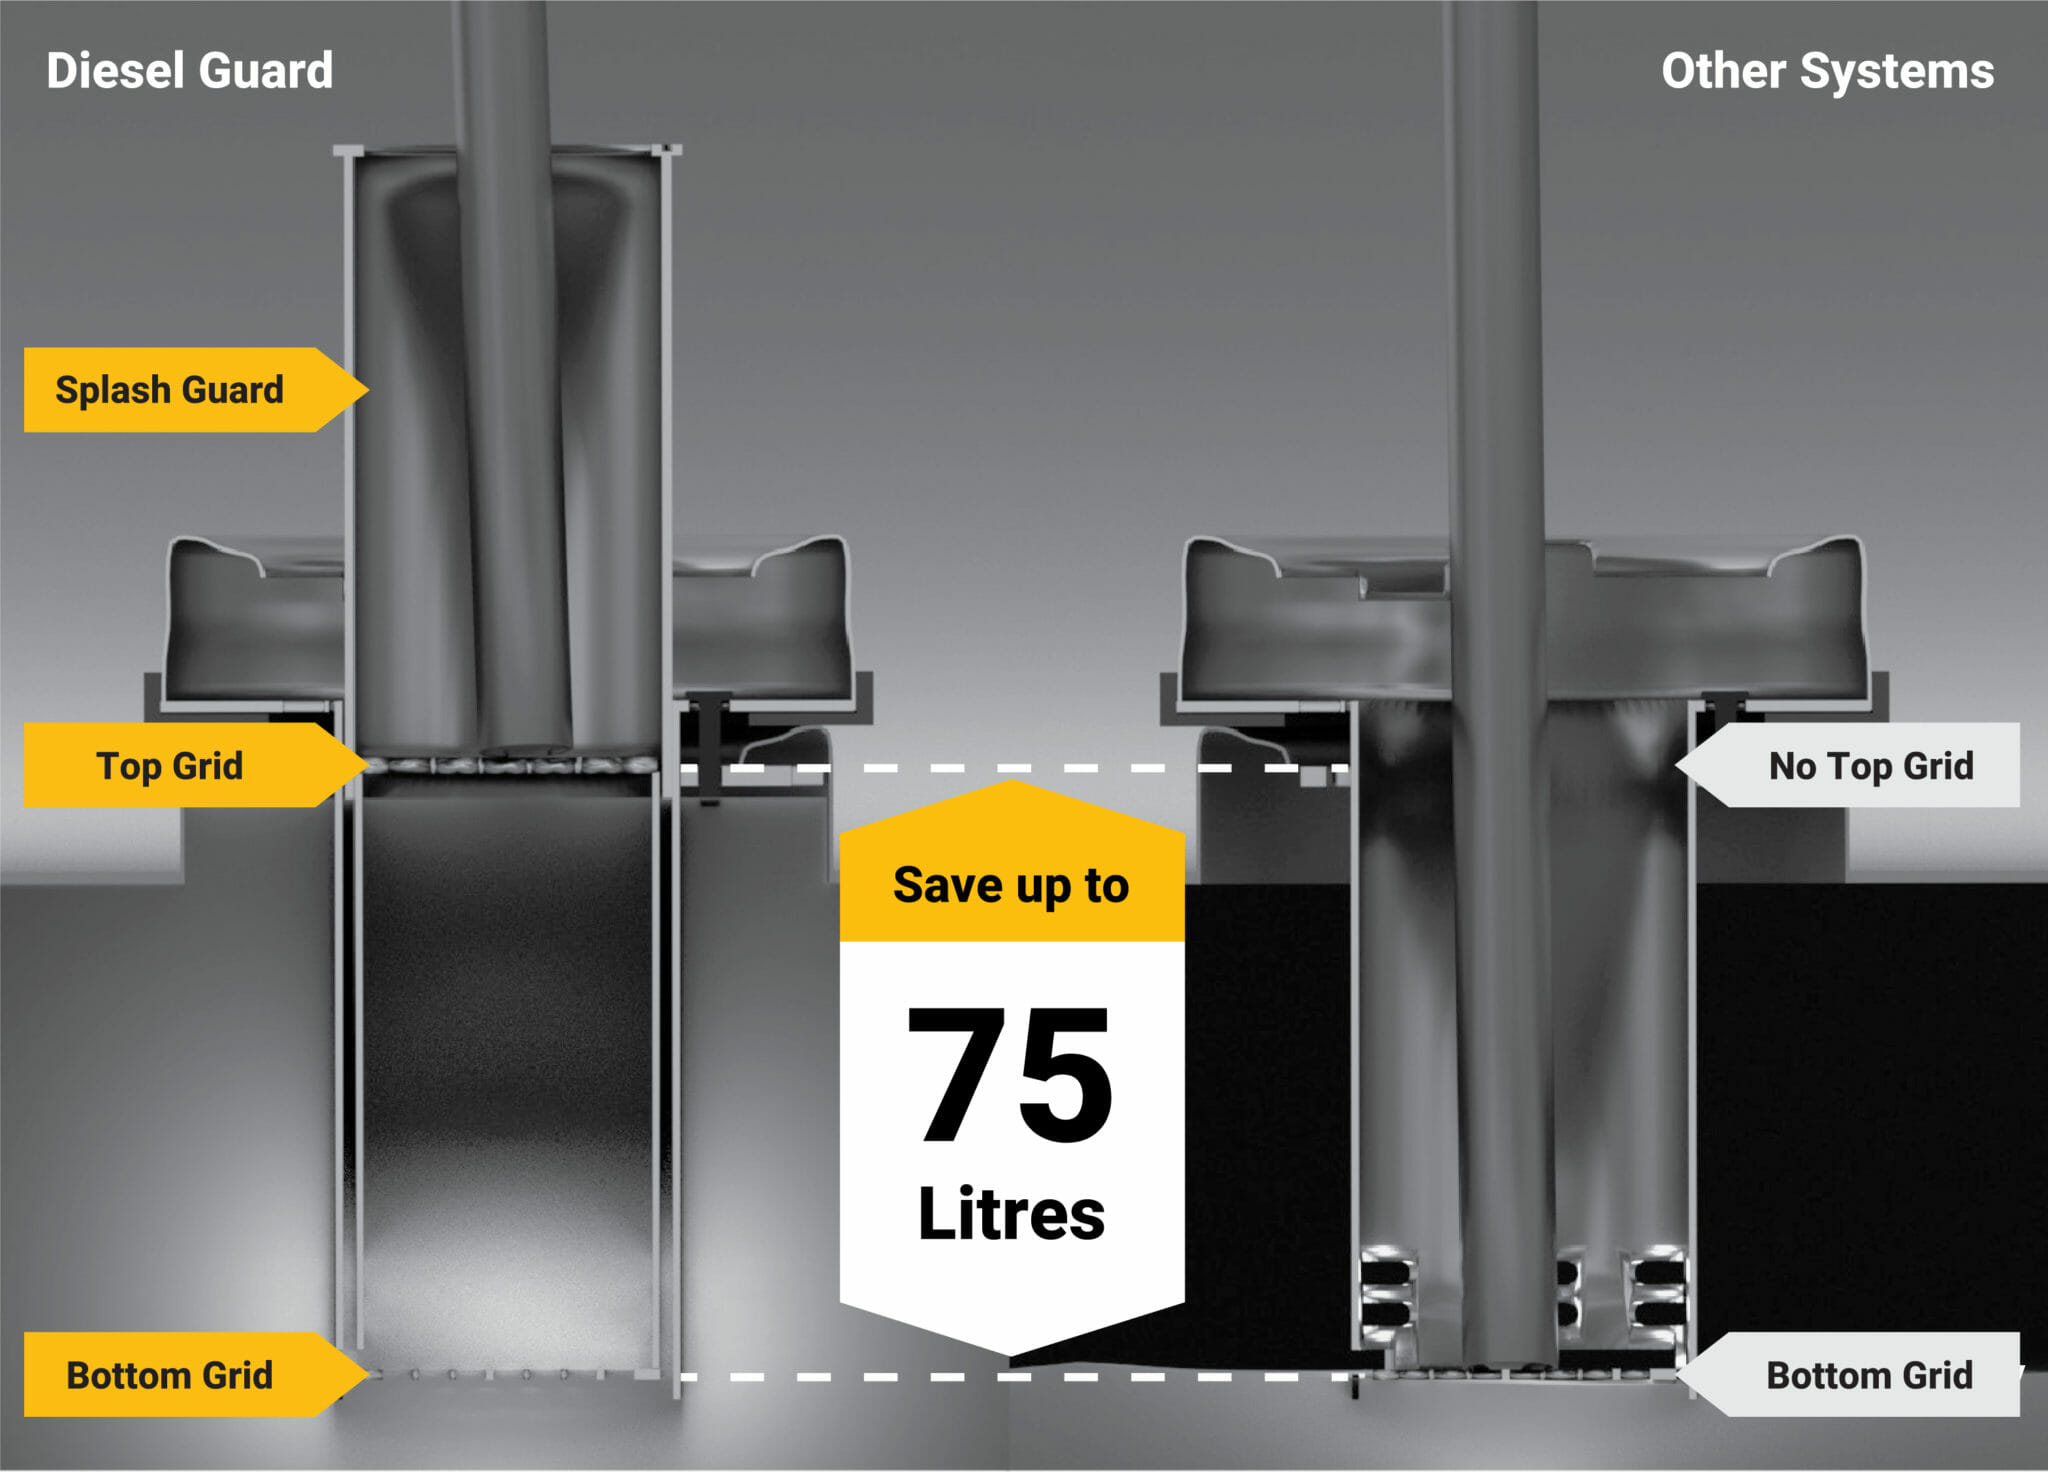 This image shows how the Diesel Guard, Theft System works. It is a 2D image of the Diesel Guard System. On right side of the drawing shows a diesel fuel system, and on the left side shows a diesel funnel with the Disele Guard